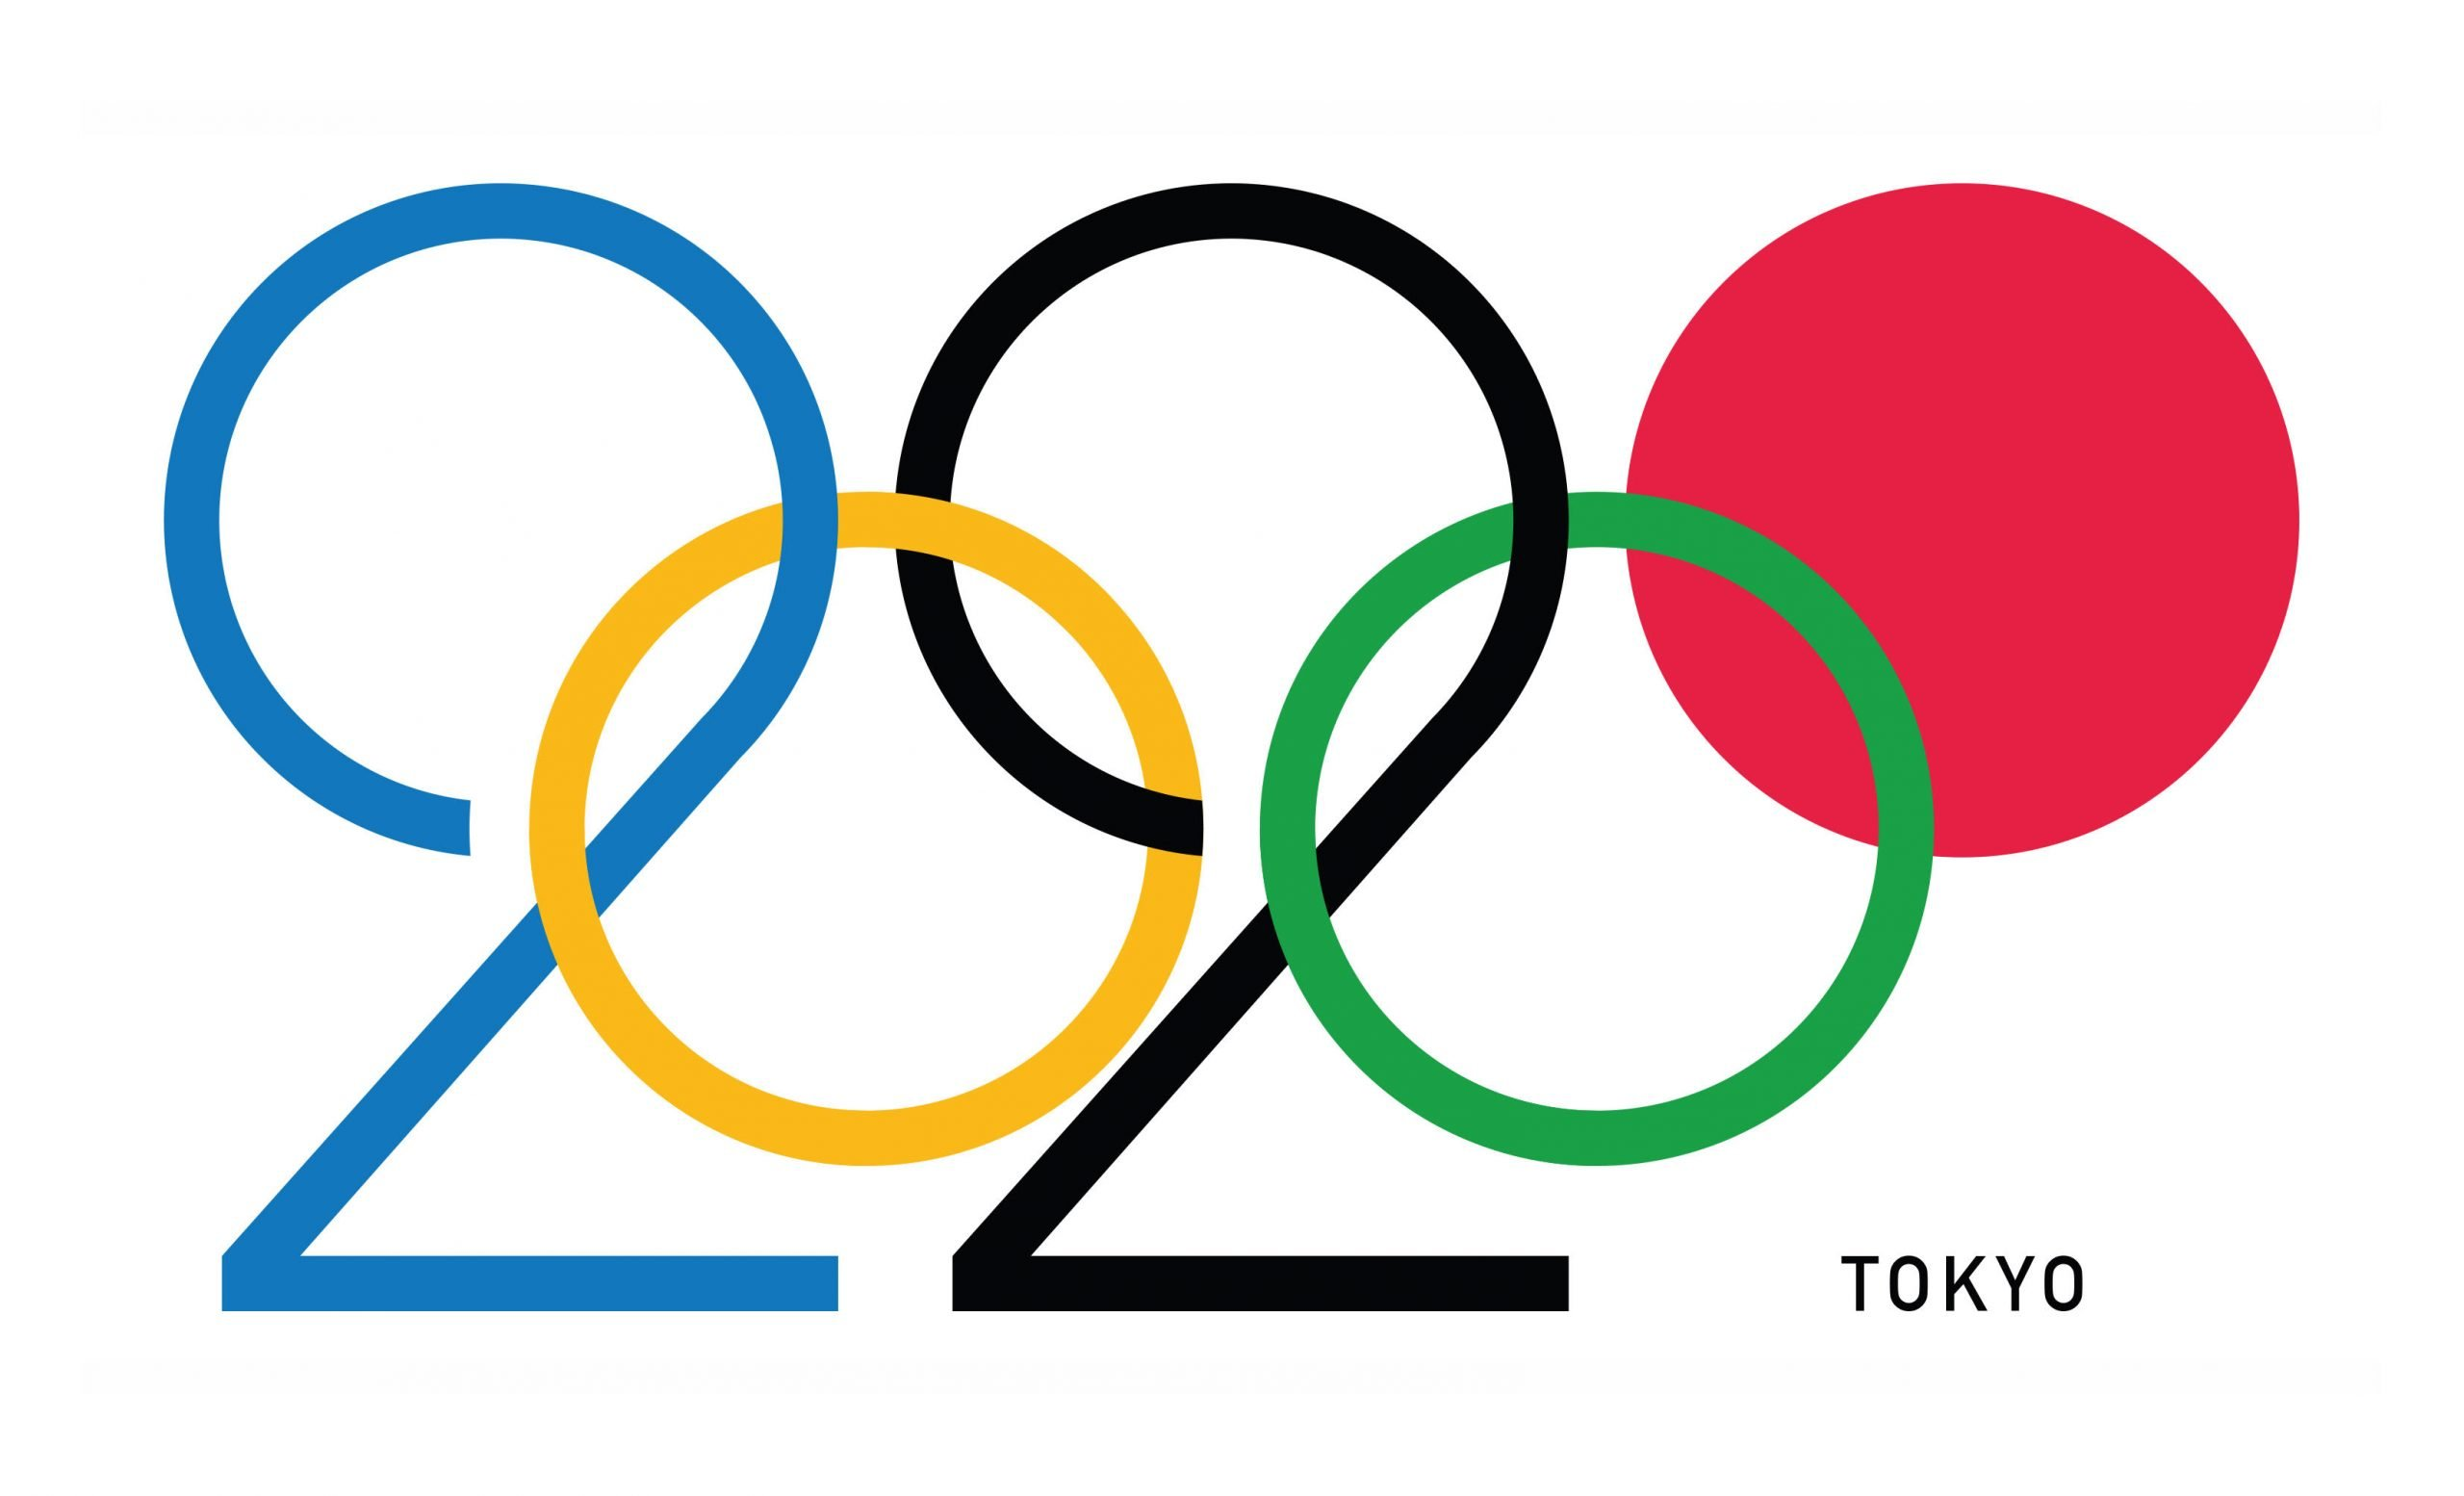 2020 logo for olympics to be hosted in Toyko. This logo is not the official logo but one designed by artist and illustrator Daren Newman. It has the blue, and black as '2's but the top of the 2 looks like a ring. The zeros of 2020 are yellow and green circles. Then finally the red is a filled in circle that represents the red sun that Japan is famous for.